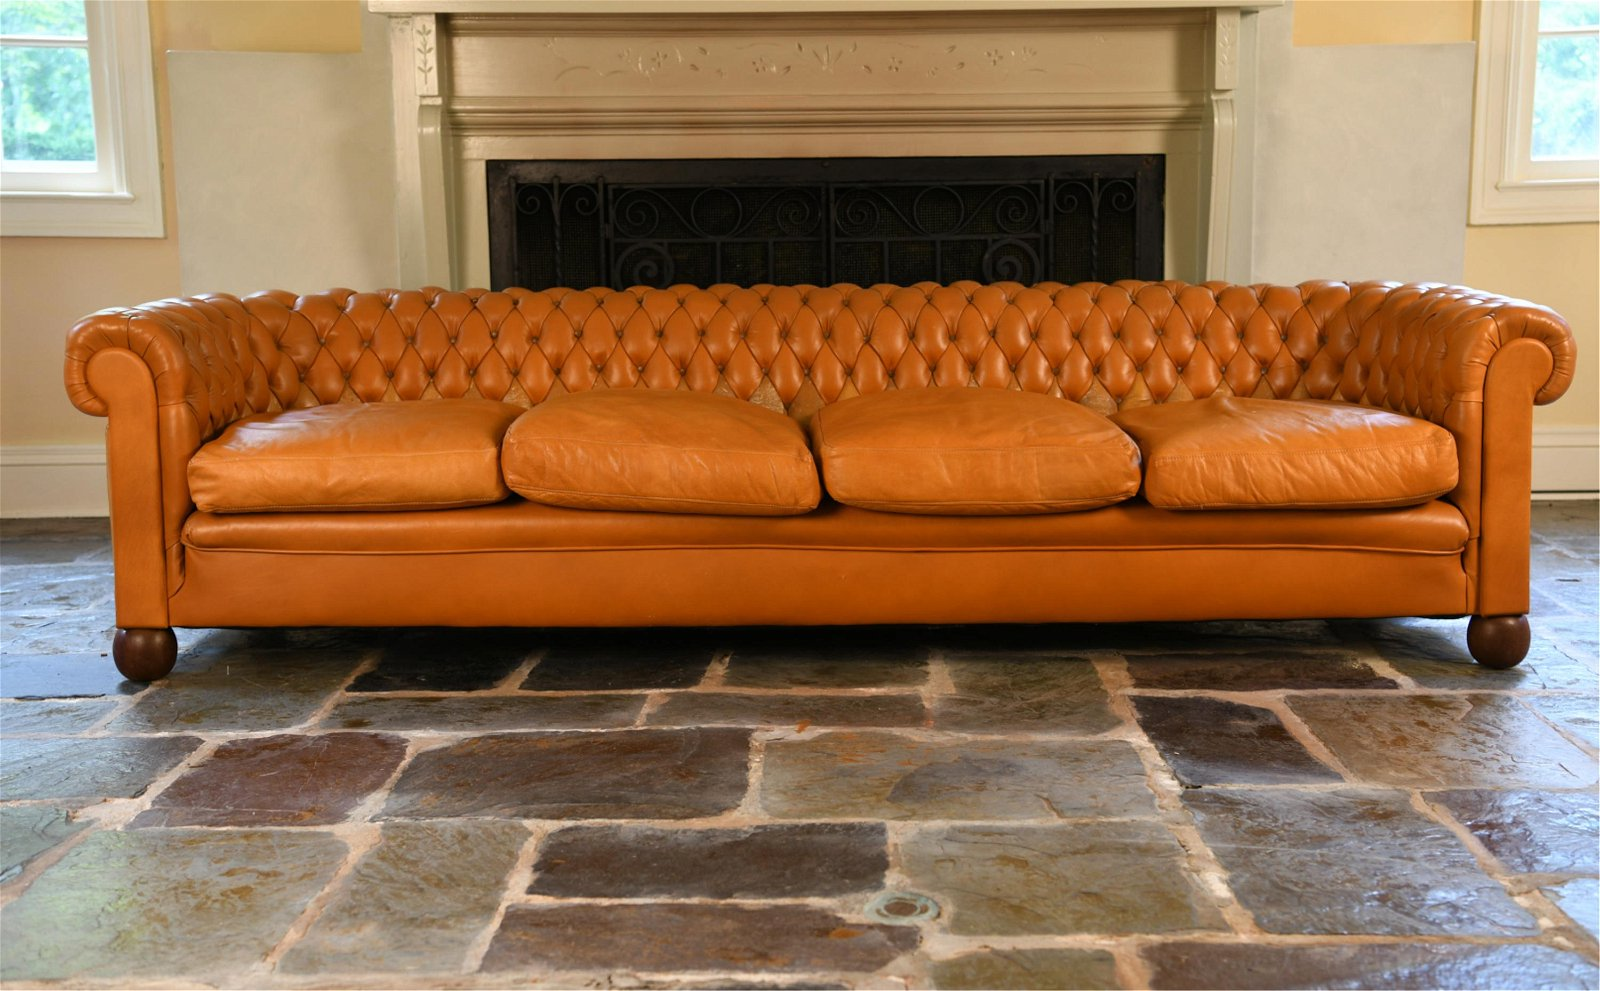 VINTAGE CHESTERFIELD BUTTERSCOTCH LEATHER SOFA